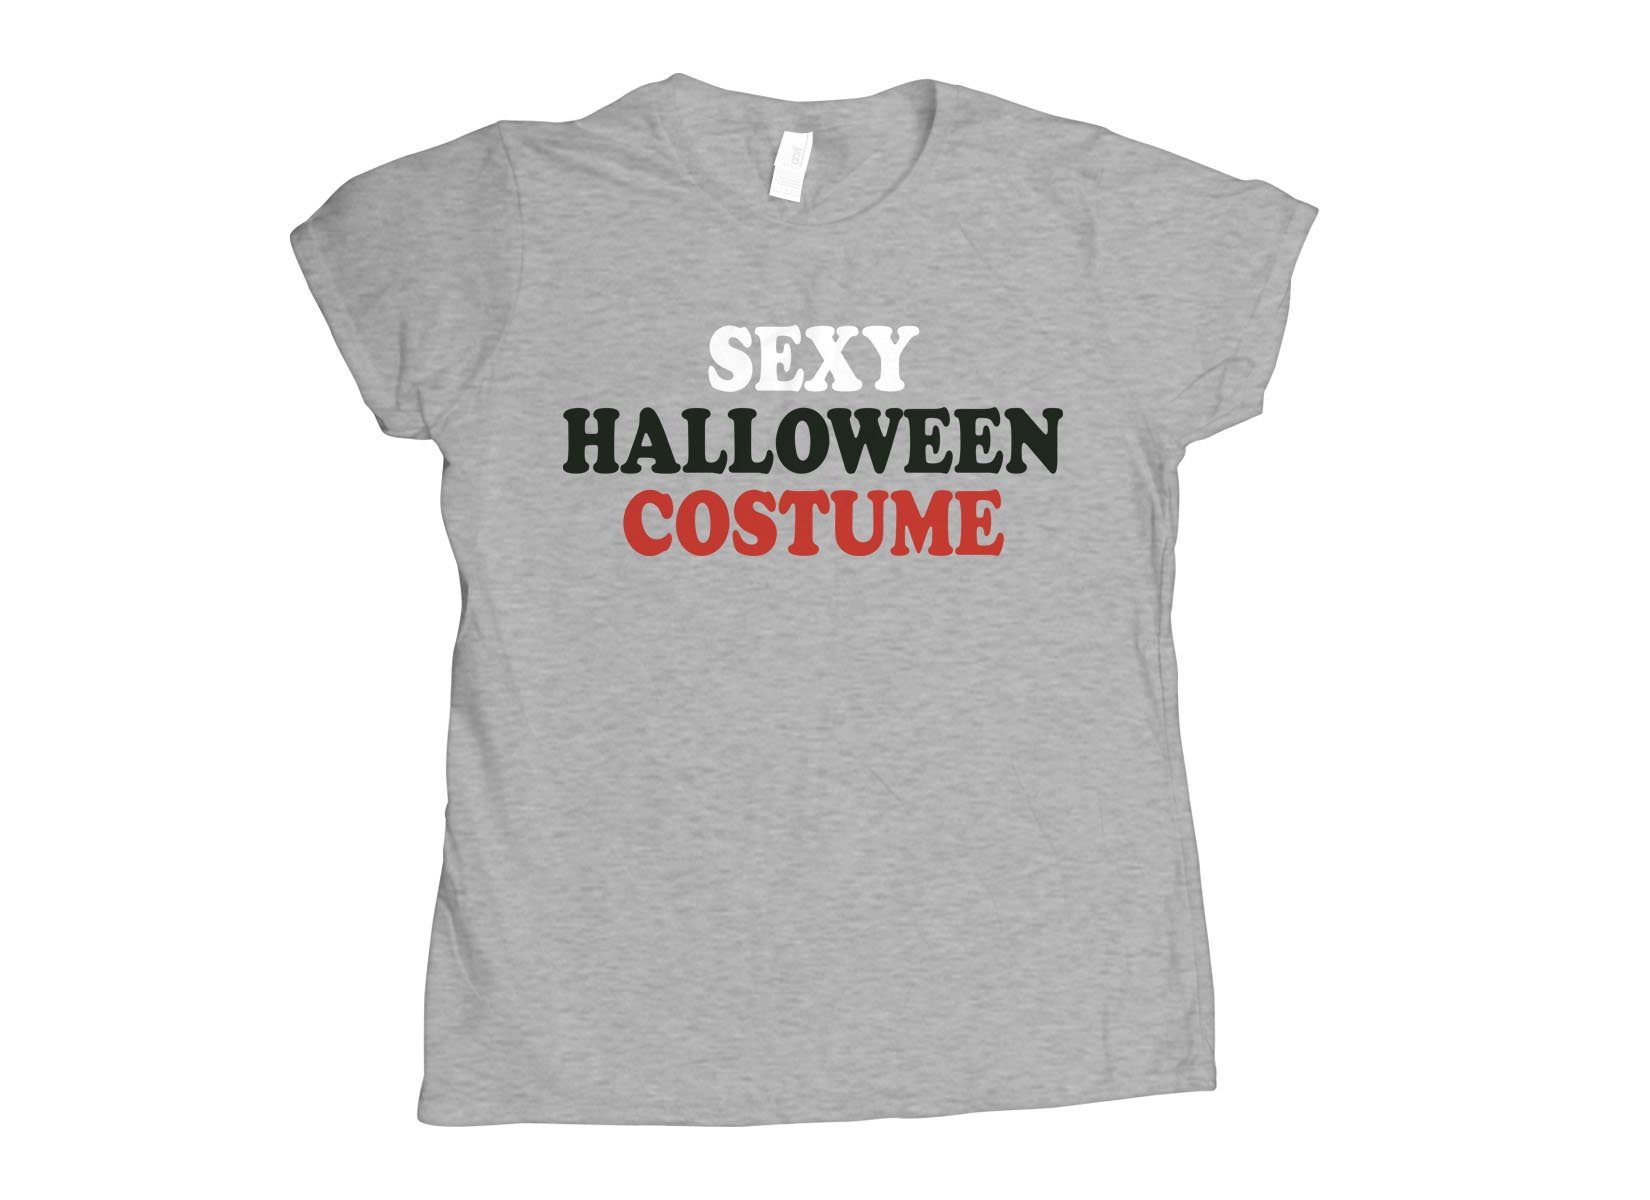 Sexy Halloween Costume on Womens T-Shirt